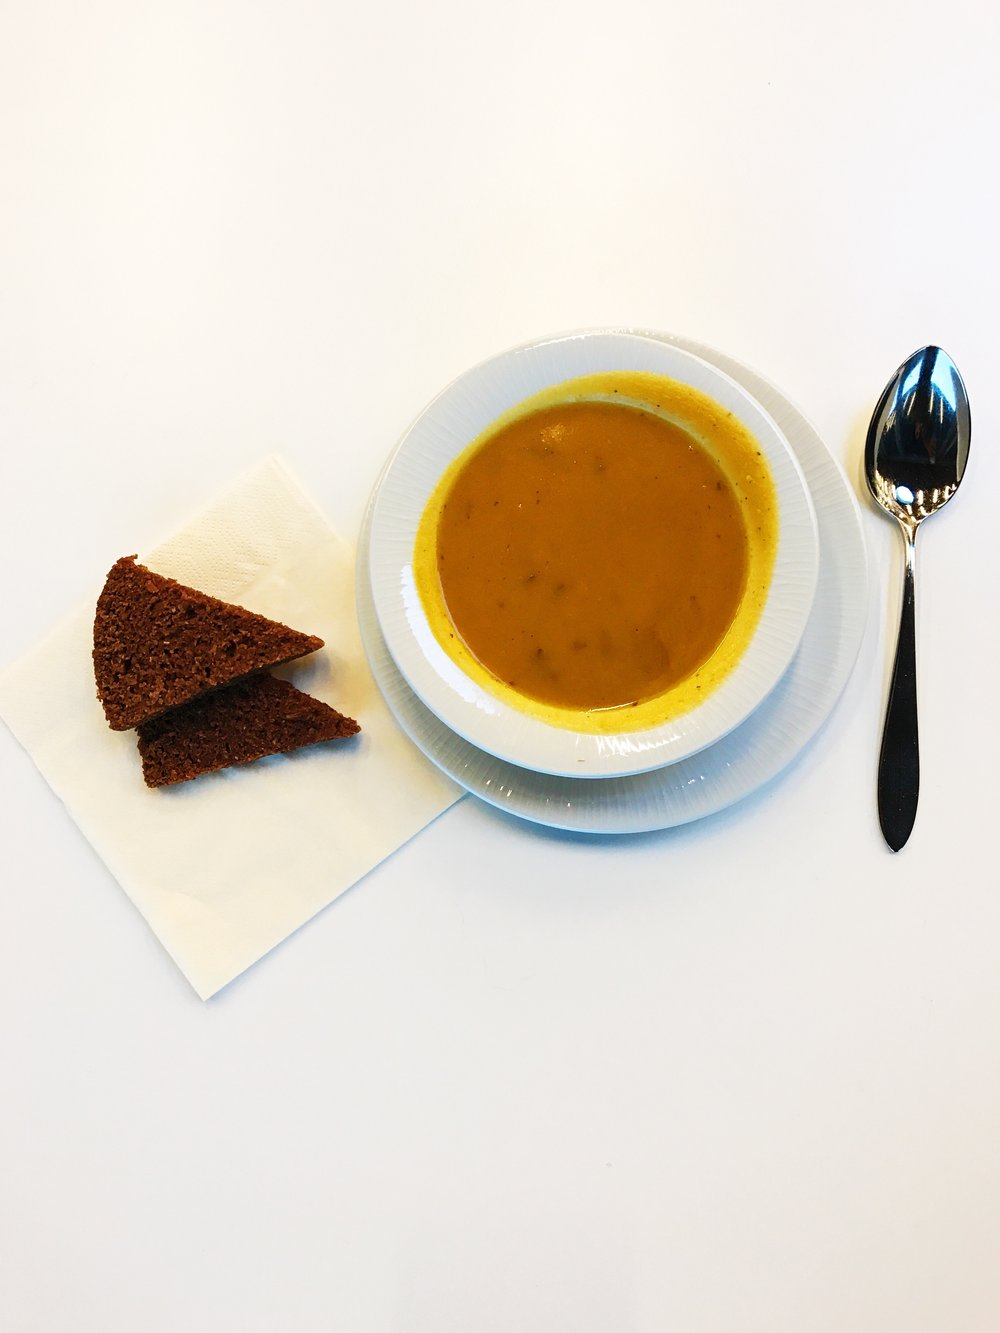 Coconut, carrot and ginger soup with a side of rye bread.